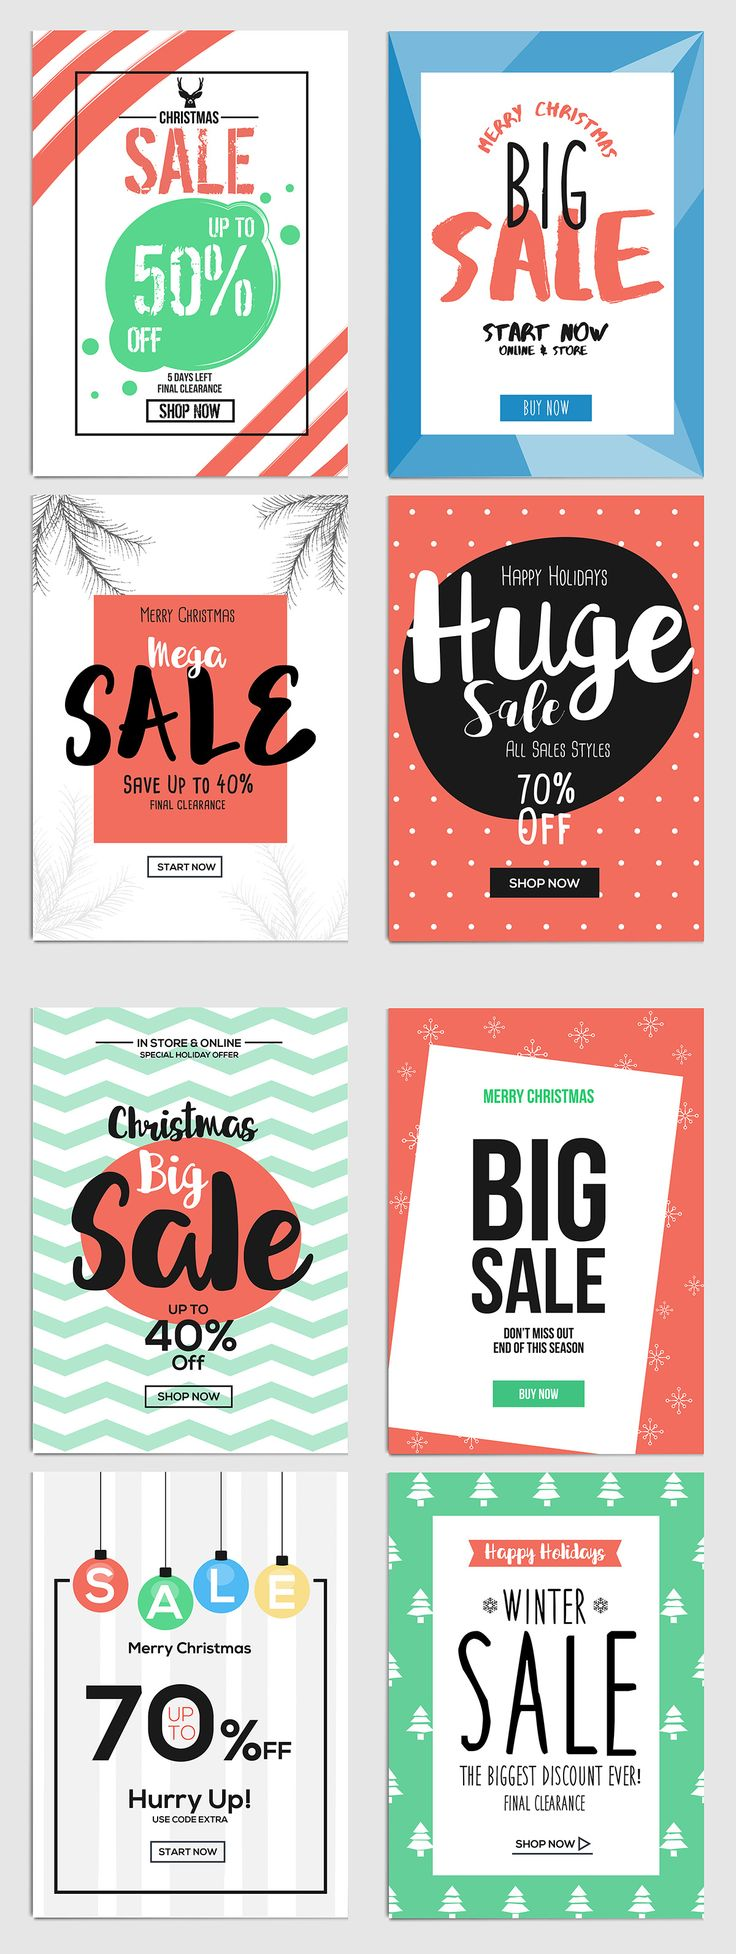 Set of Christmas Sale Flyer Template by Creative Graphics on @creativemarket